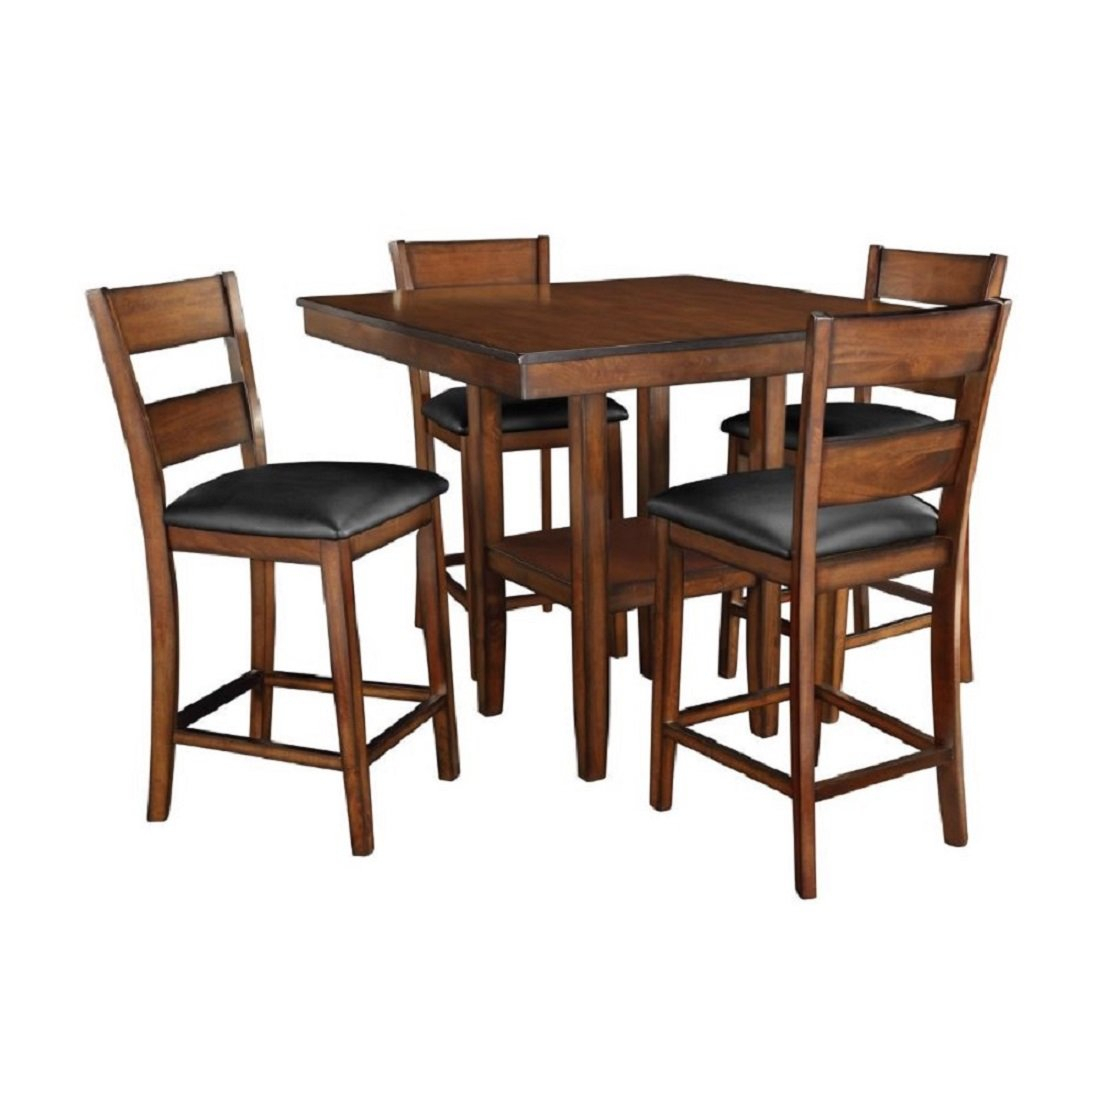 Bauman Pendwood 5 Piece Counter Height Dining Set Within Newest Amir 5 Piece Solid Wood Dining Sets (Set Of 5) (Image 4 of 20)